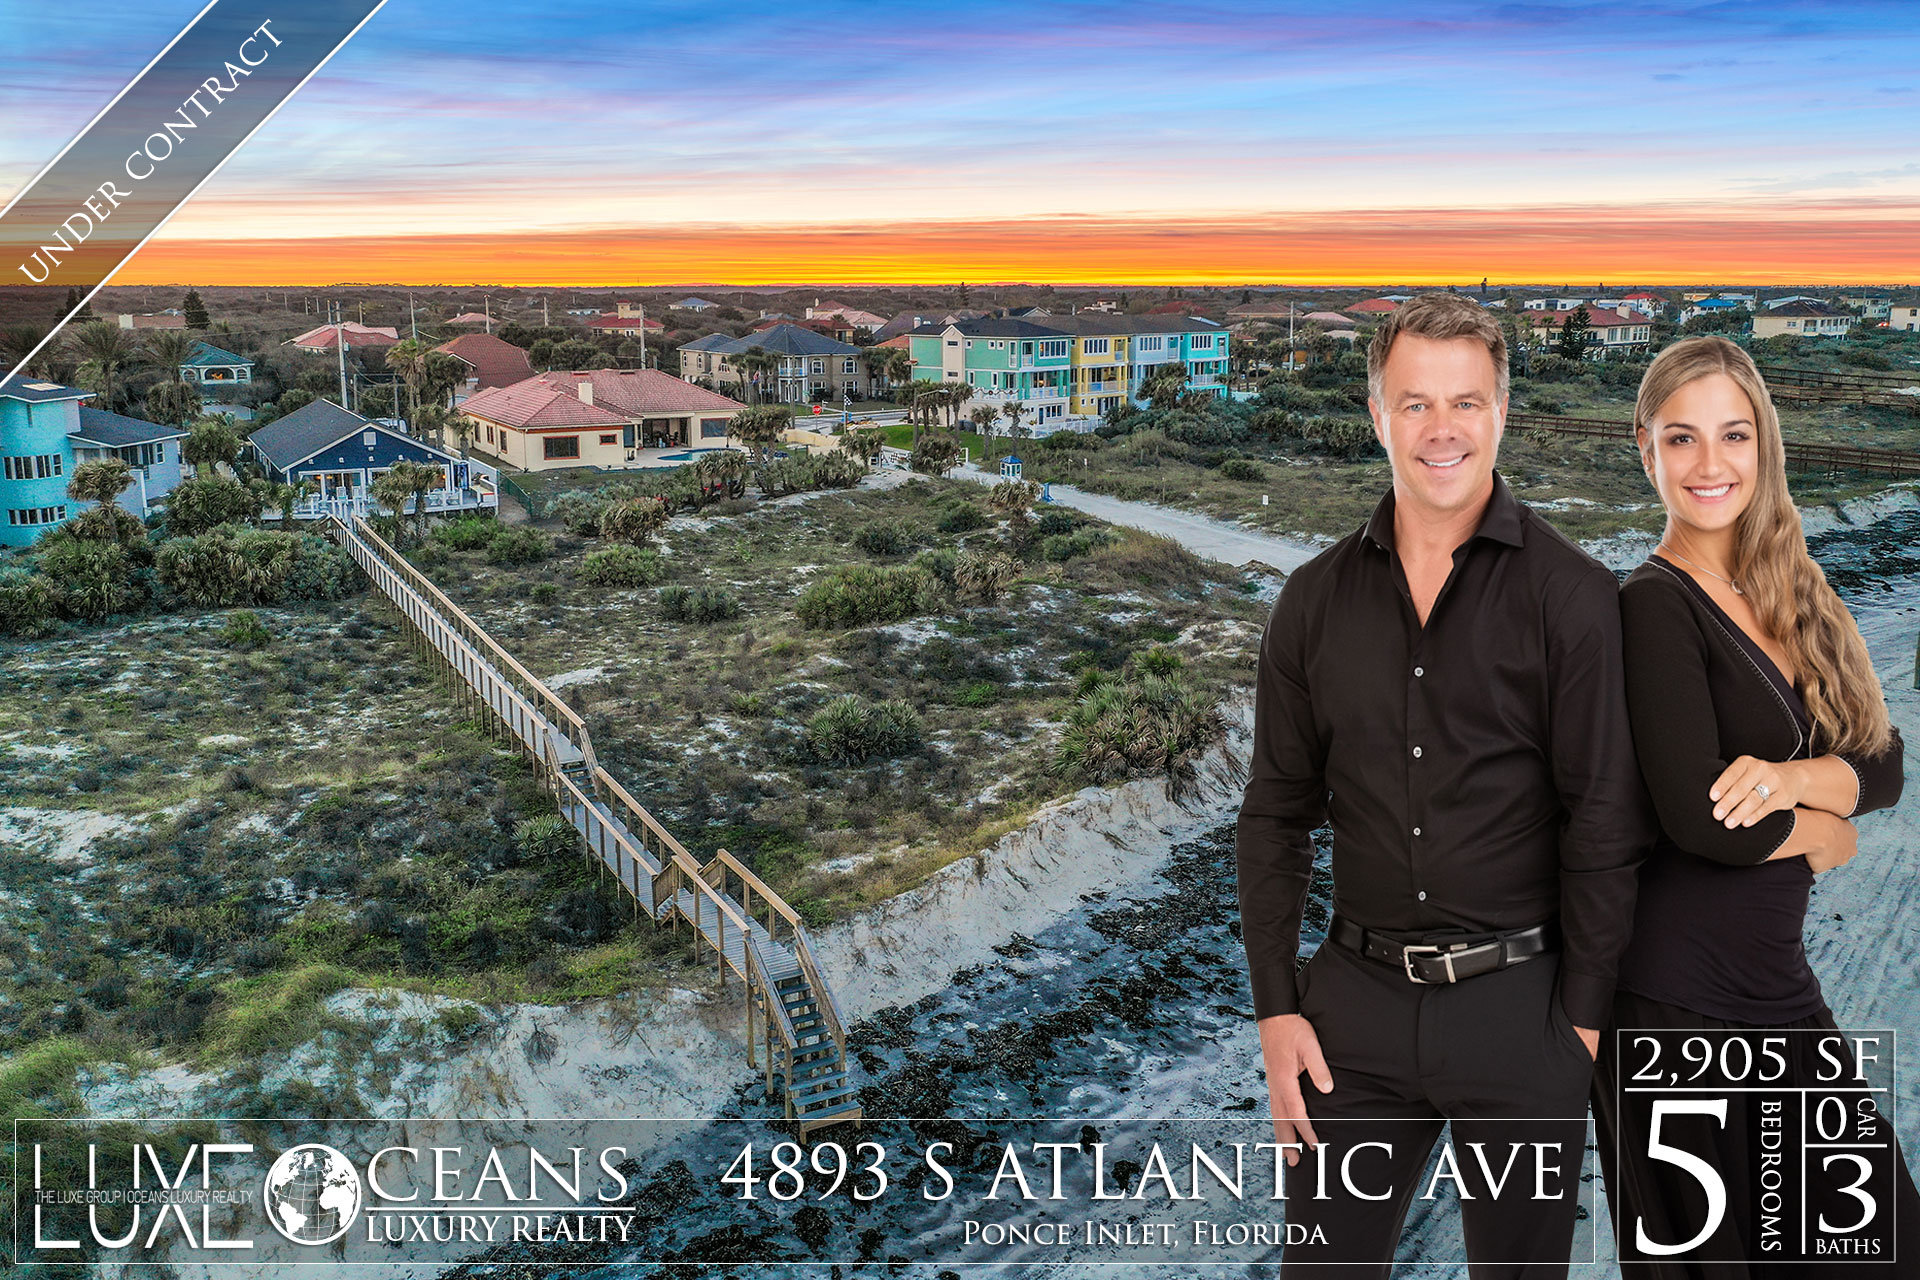 Ponce Inlet Oceanfront Homes For Sale- Under-Contract- 4893 S Atlantic Ave Waterfront Homes For Sale